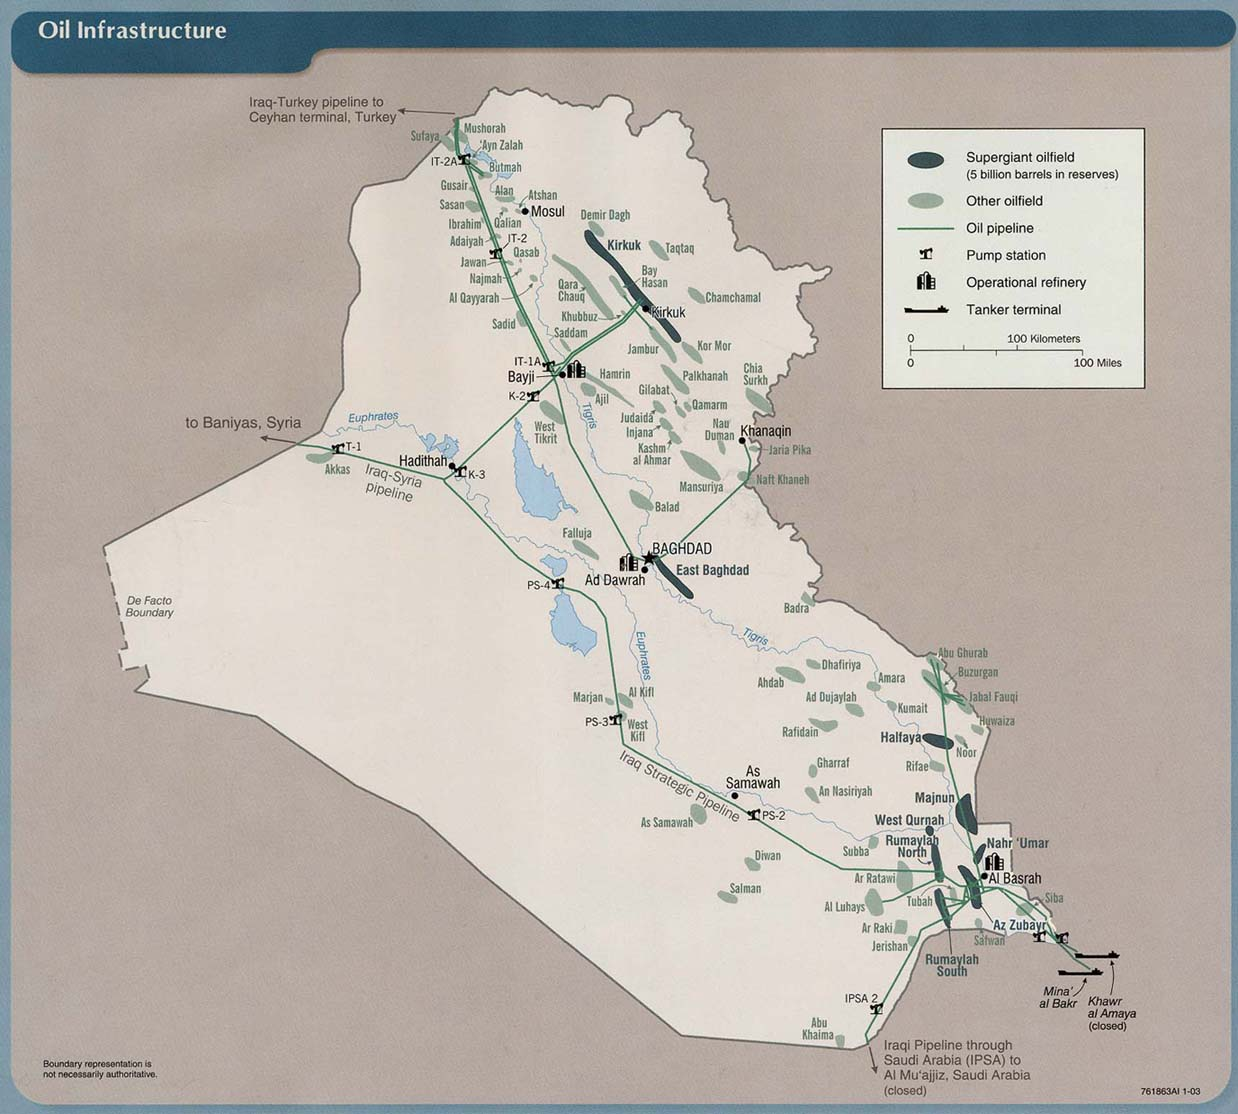 Download free world energy maps for alternative and renewable iraq oil infrastructure gumiabroncs Image collections